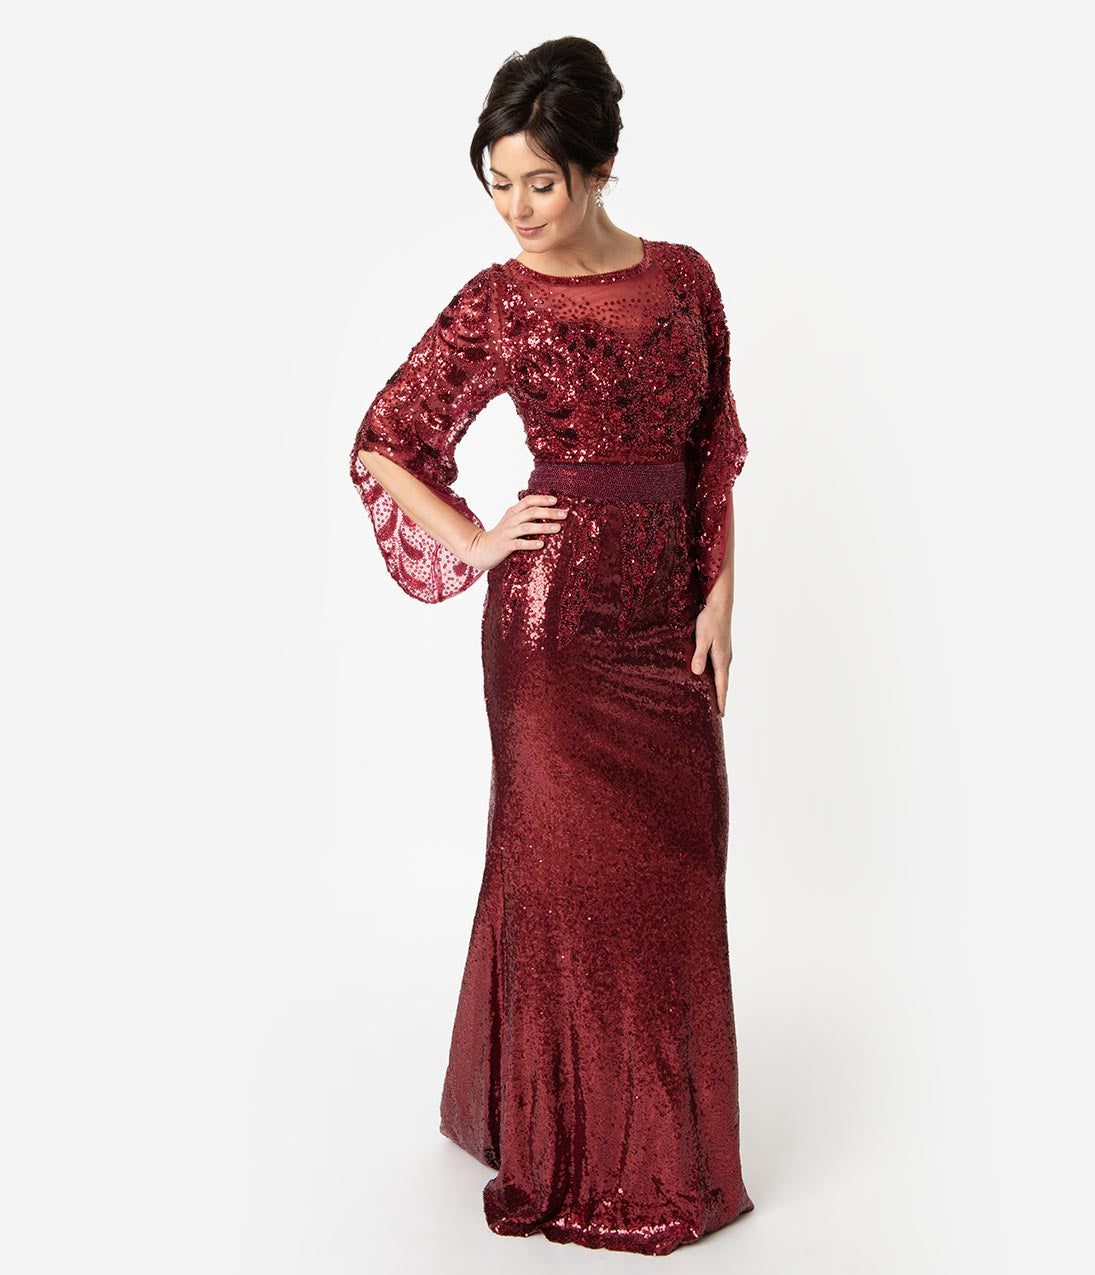 5549c862121f8 Burgundy Red Lace Chiffon Sleeveless Embellished Long Dress   Jacket ...